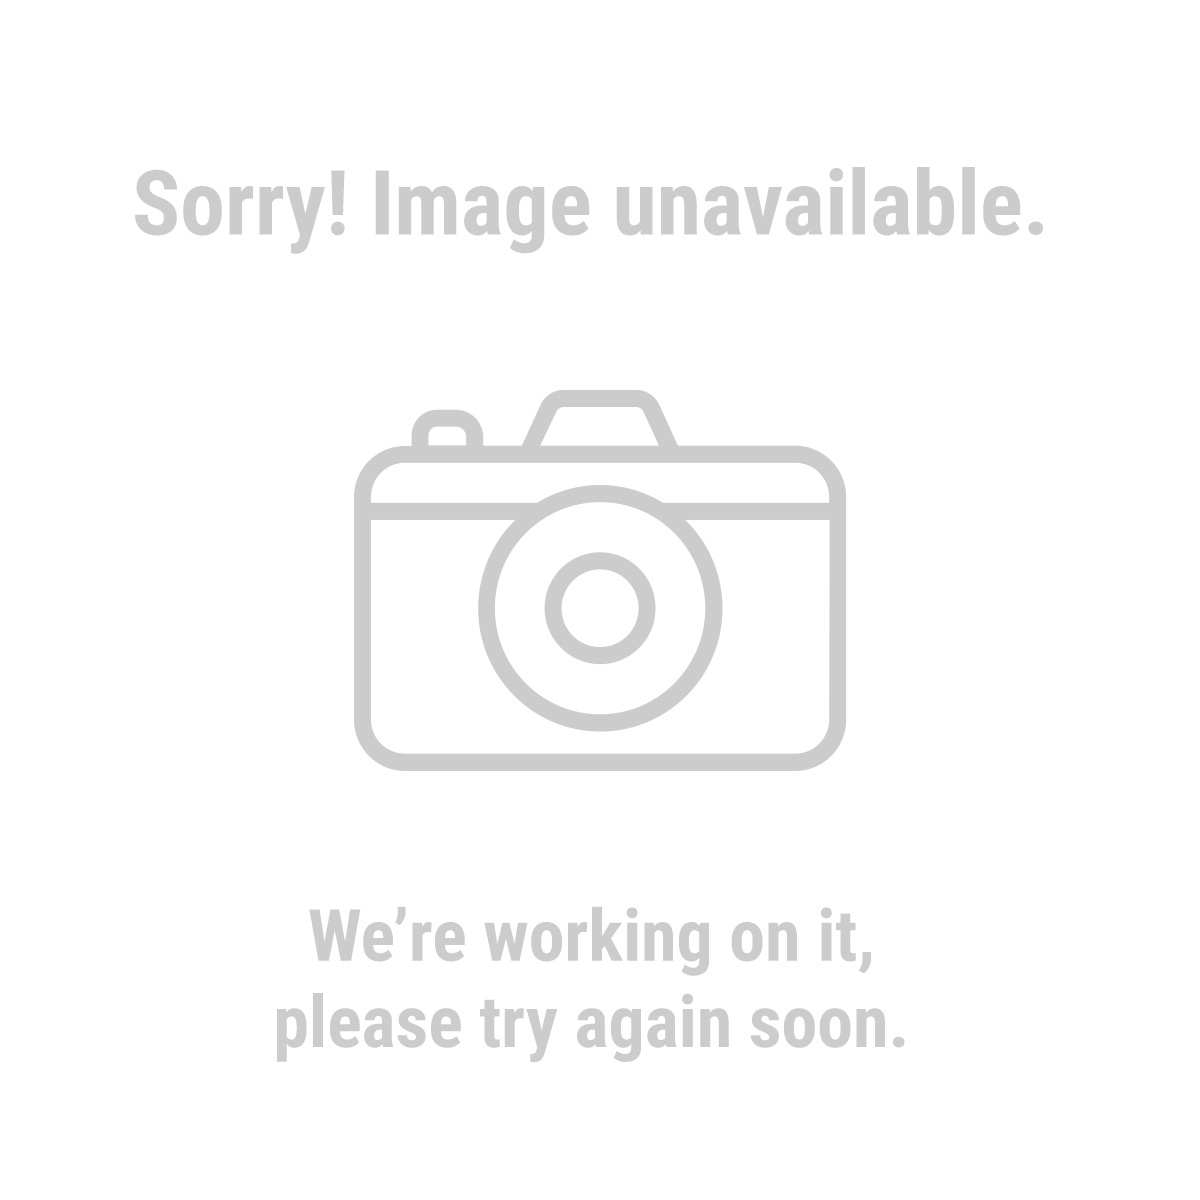 Haul-Master 61913 Triple Ball Trailer Hitch